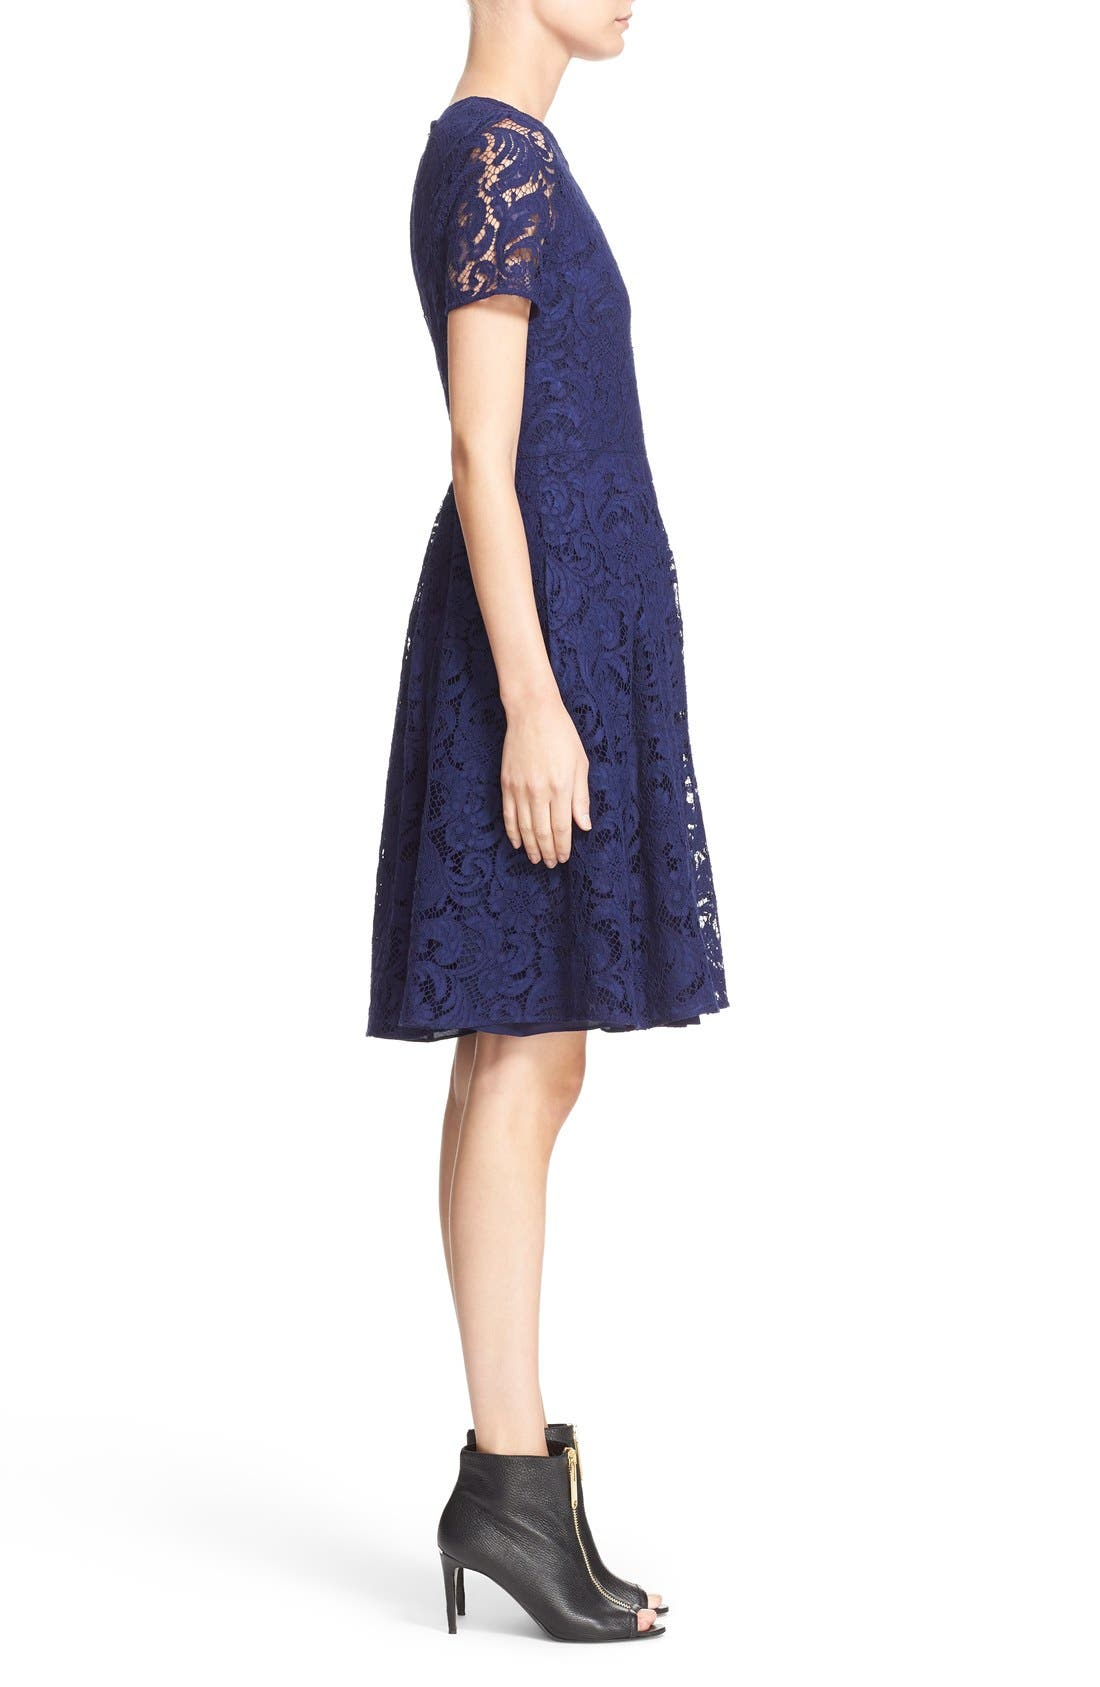 BURBERRY LONDON,                             'Alice' Short Sleeve Corded Lace Fit & Flare Dress,                             Alternate thumbnail 4, color,                             495